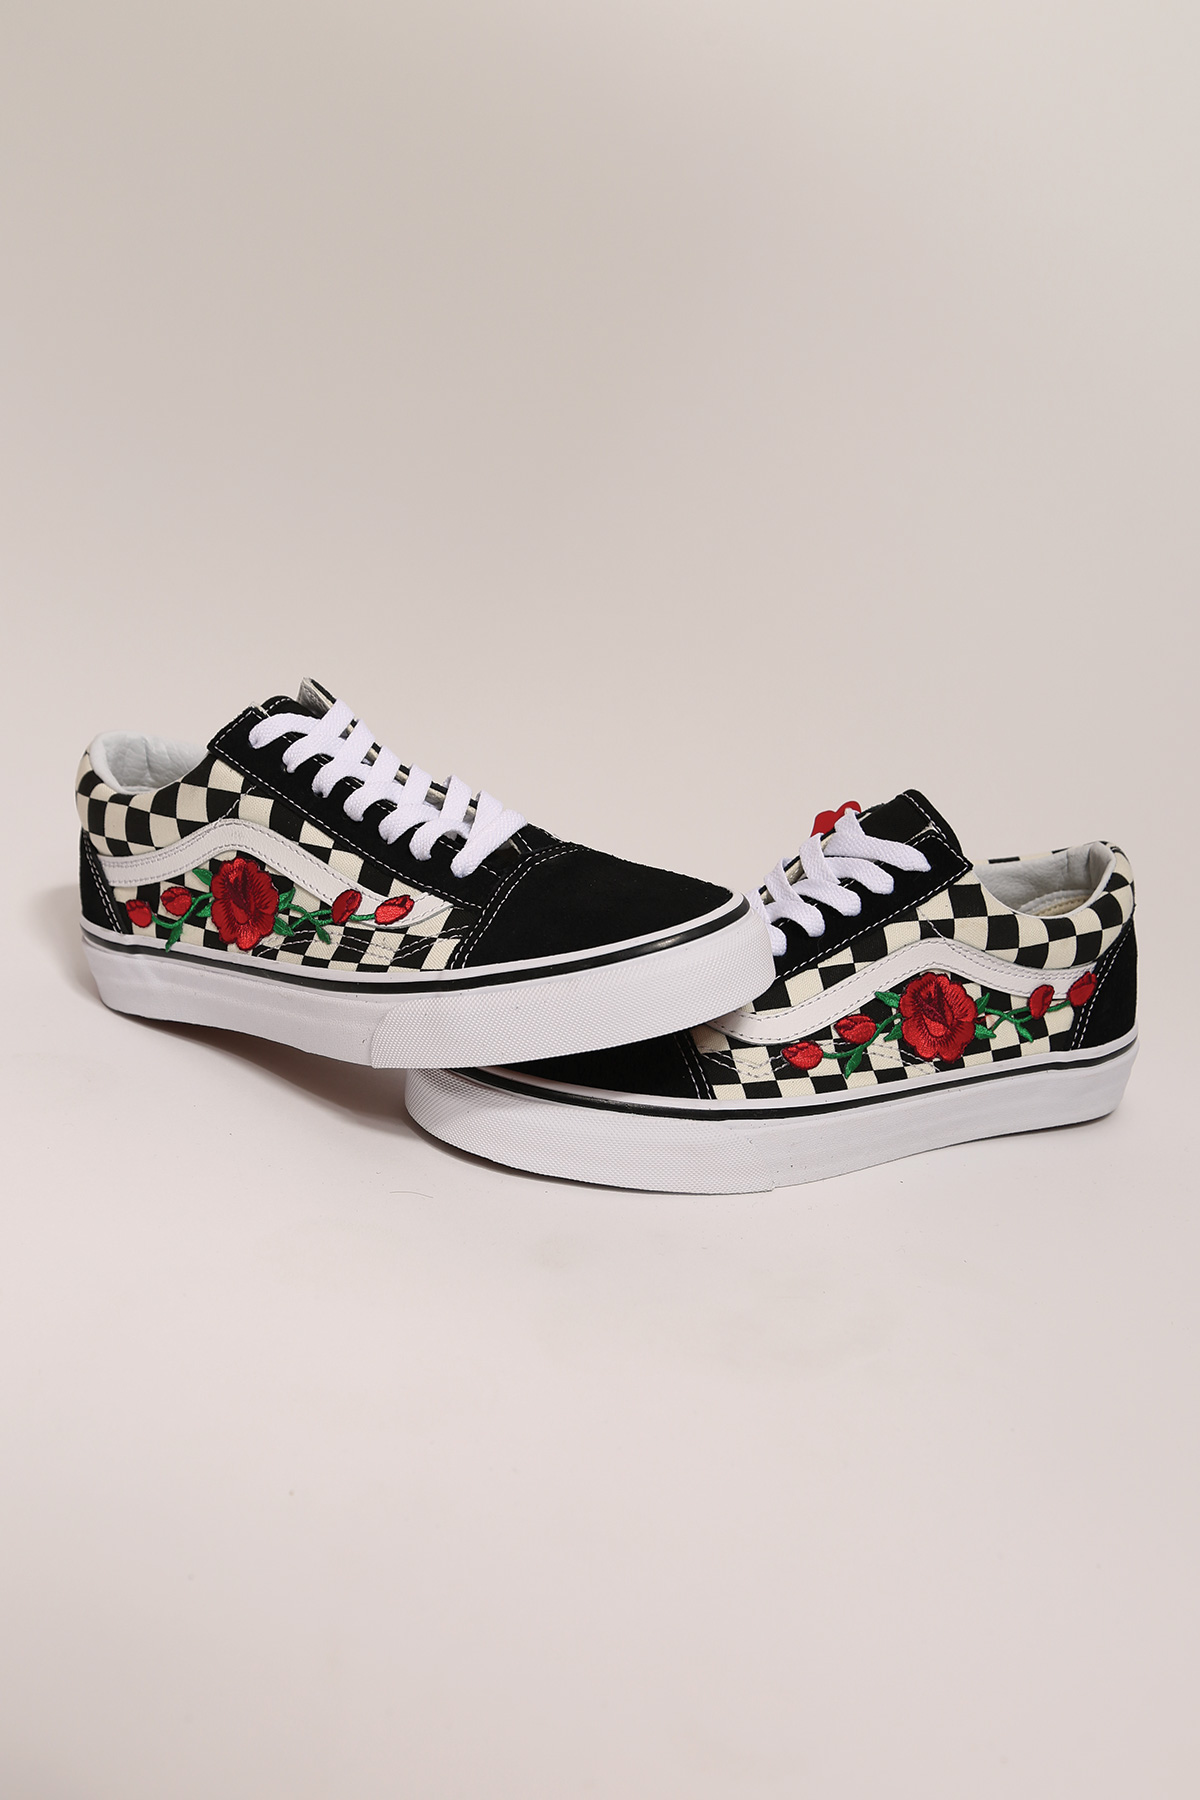 81184e9917a custom rose vans checkered old skool low top — iamkoko.la